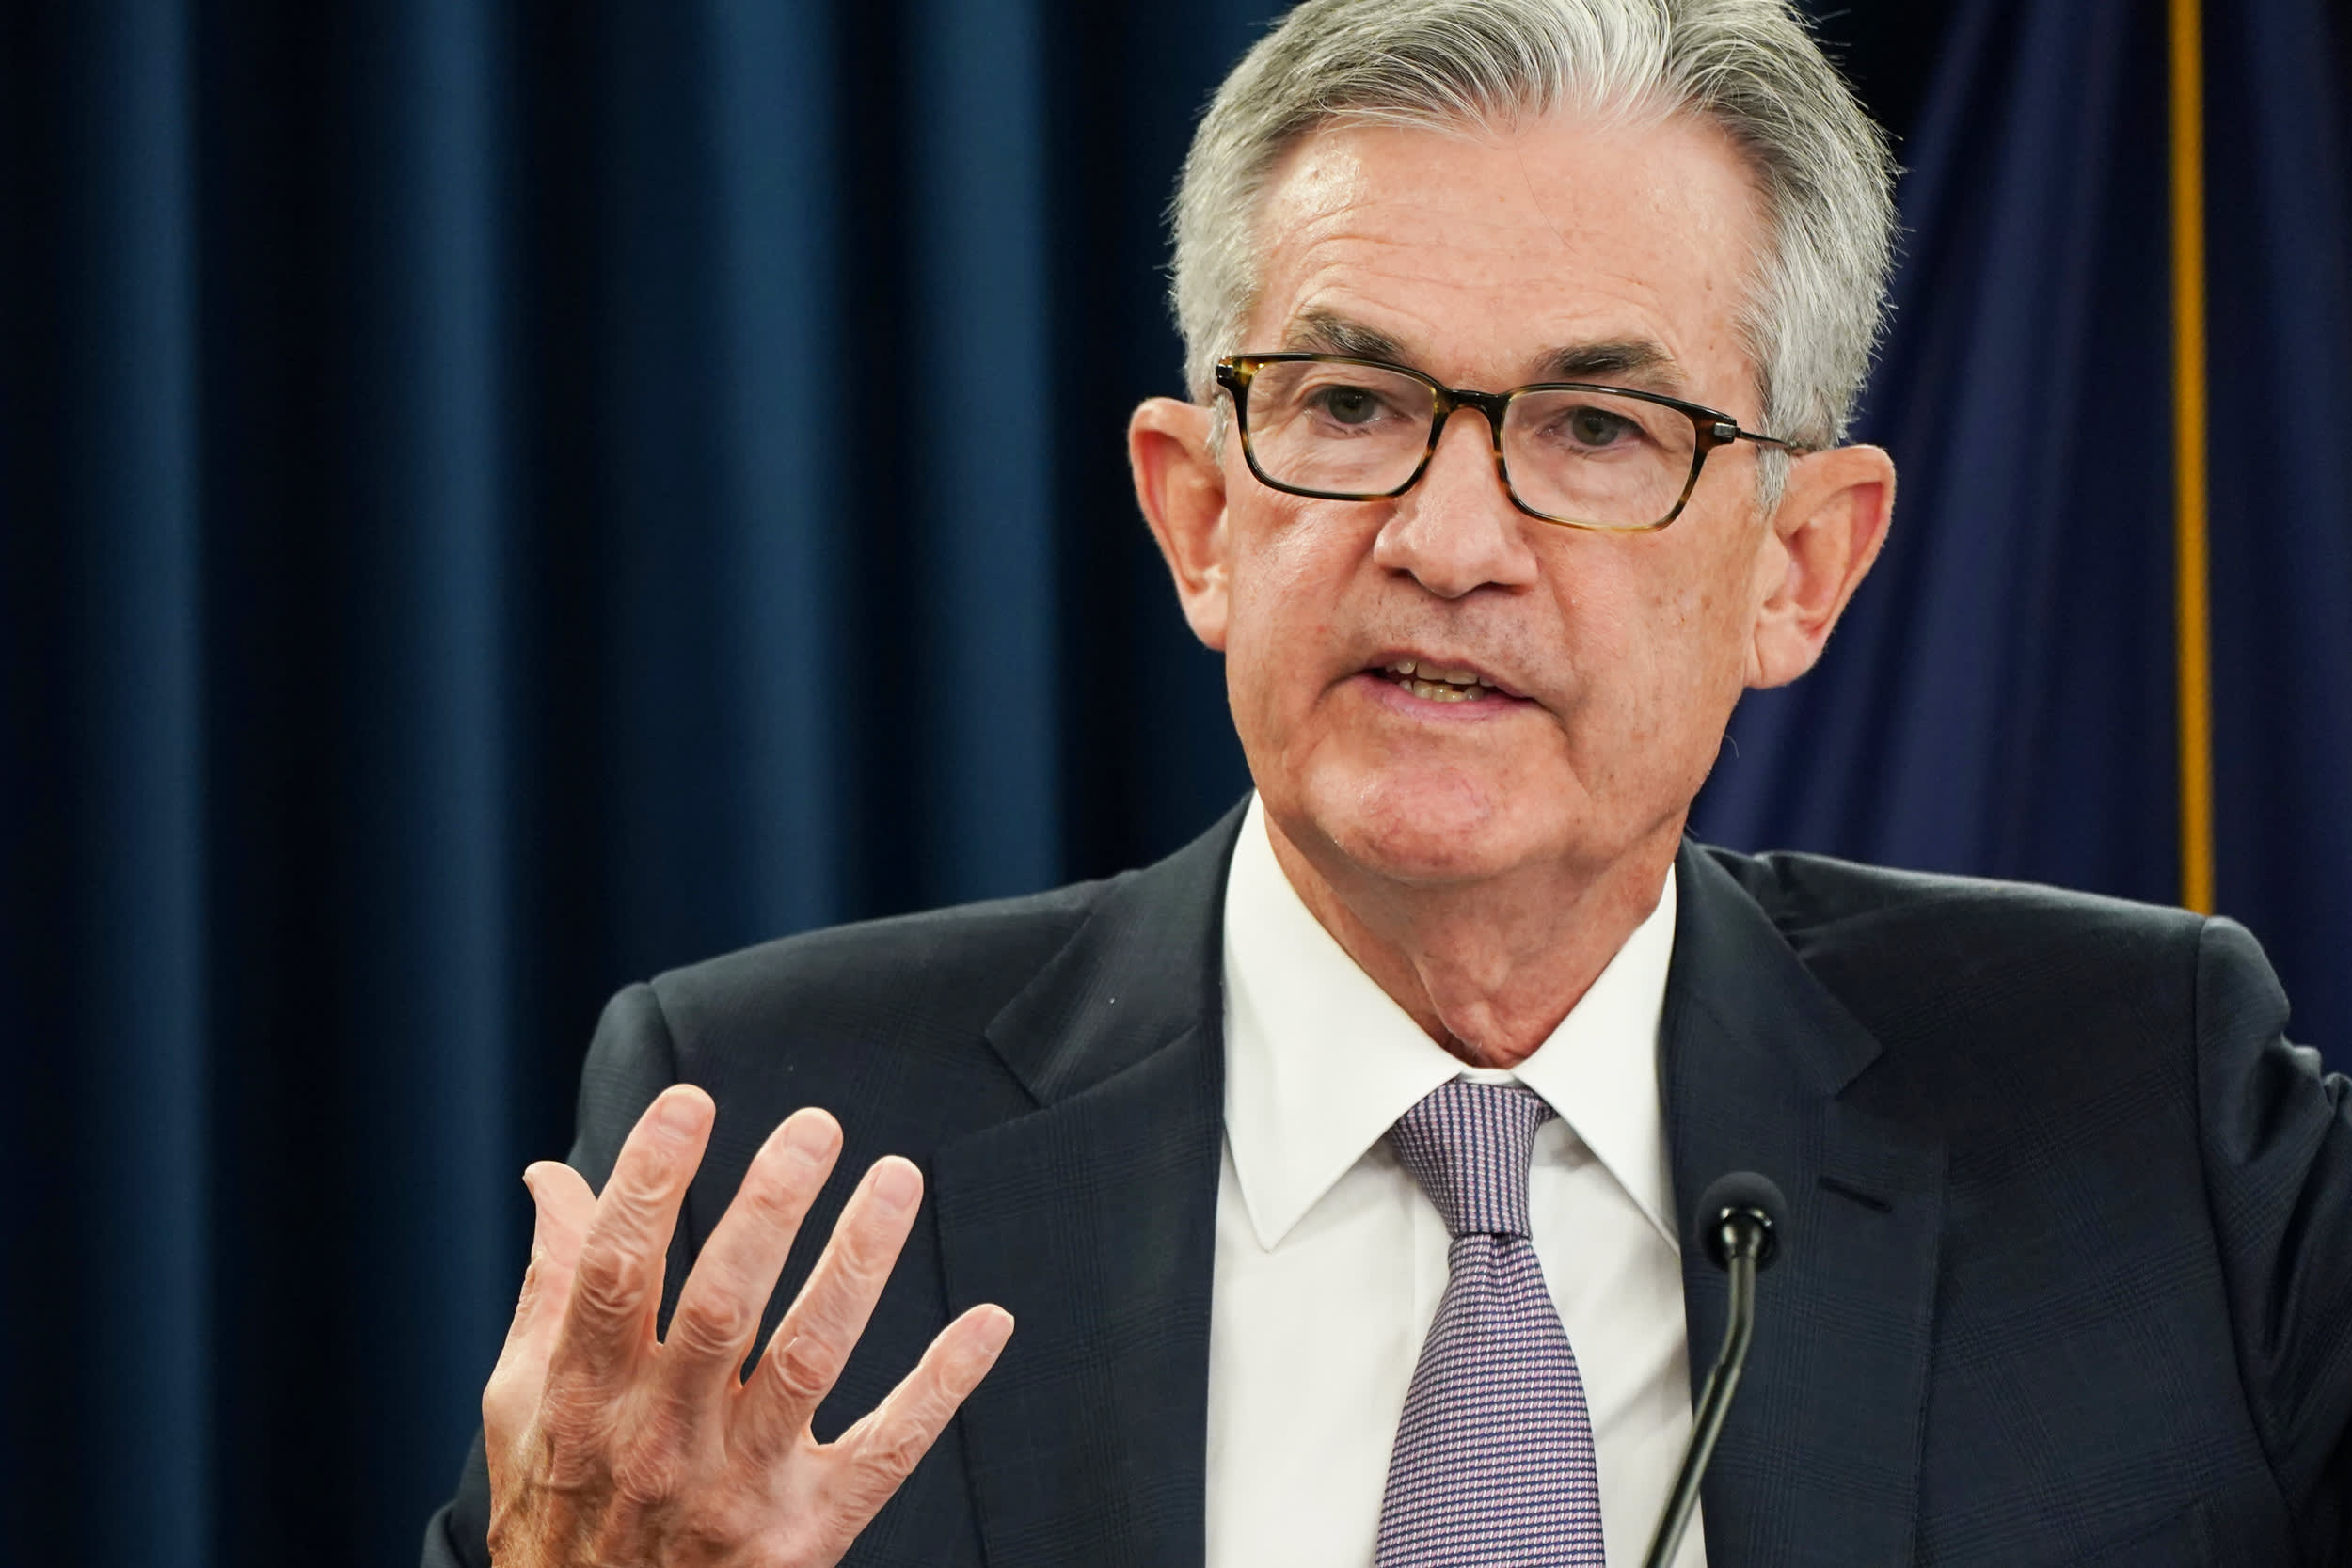 Watch Fed Chair Jerome Powell speak live on the economy